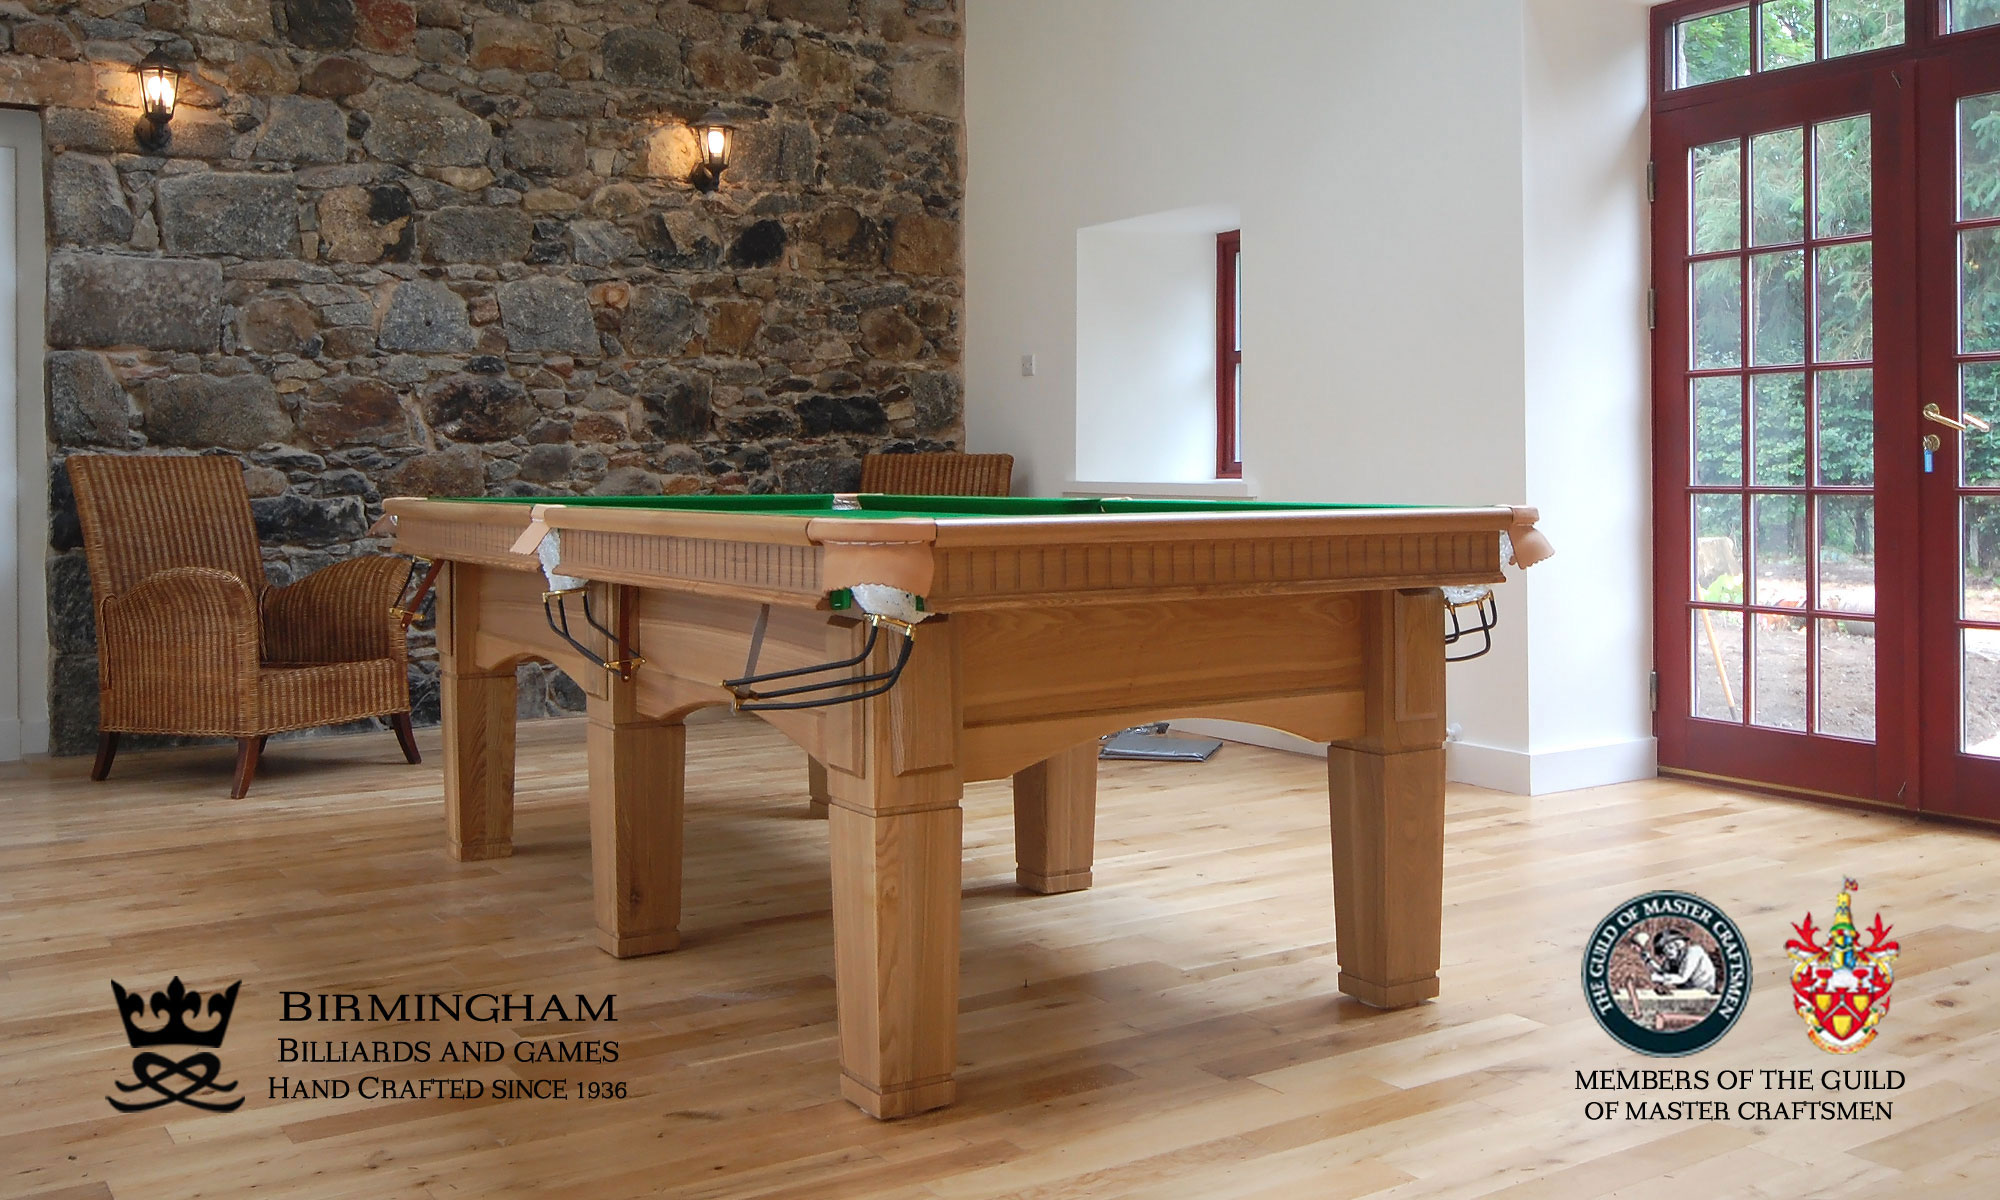 Contemporary, modern snooker tables